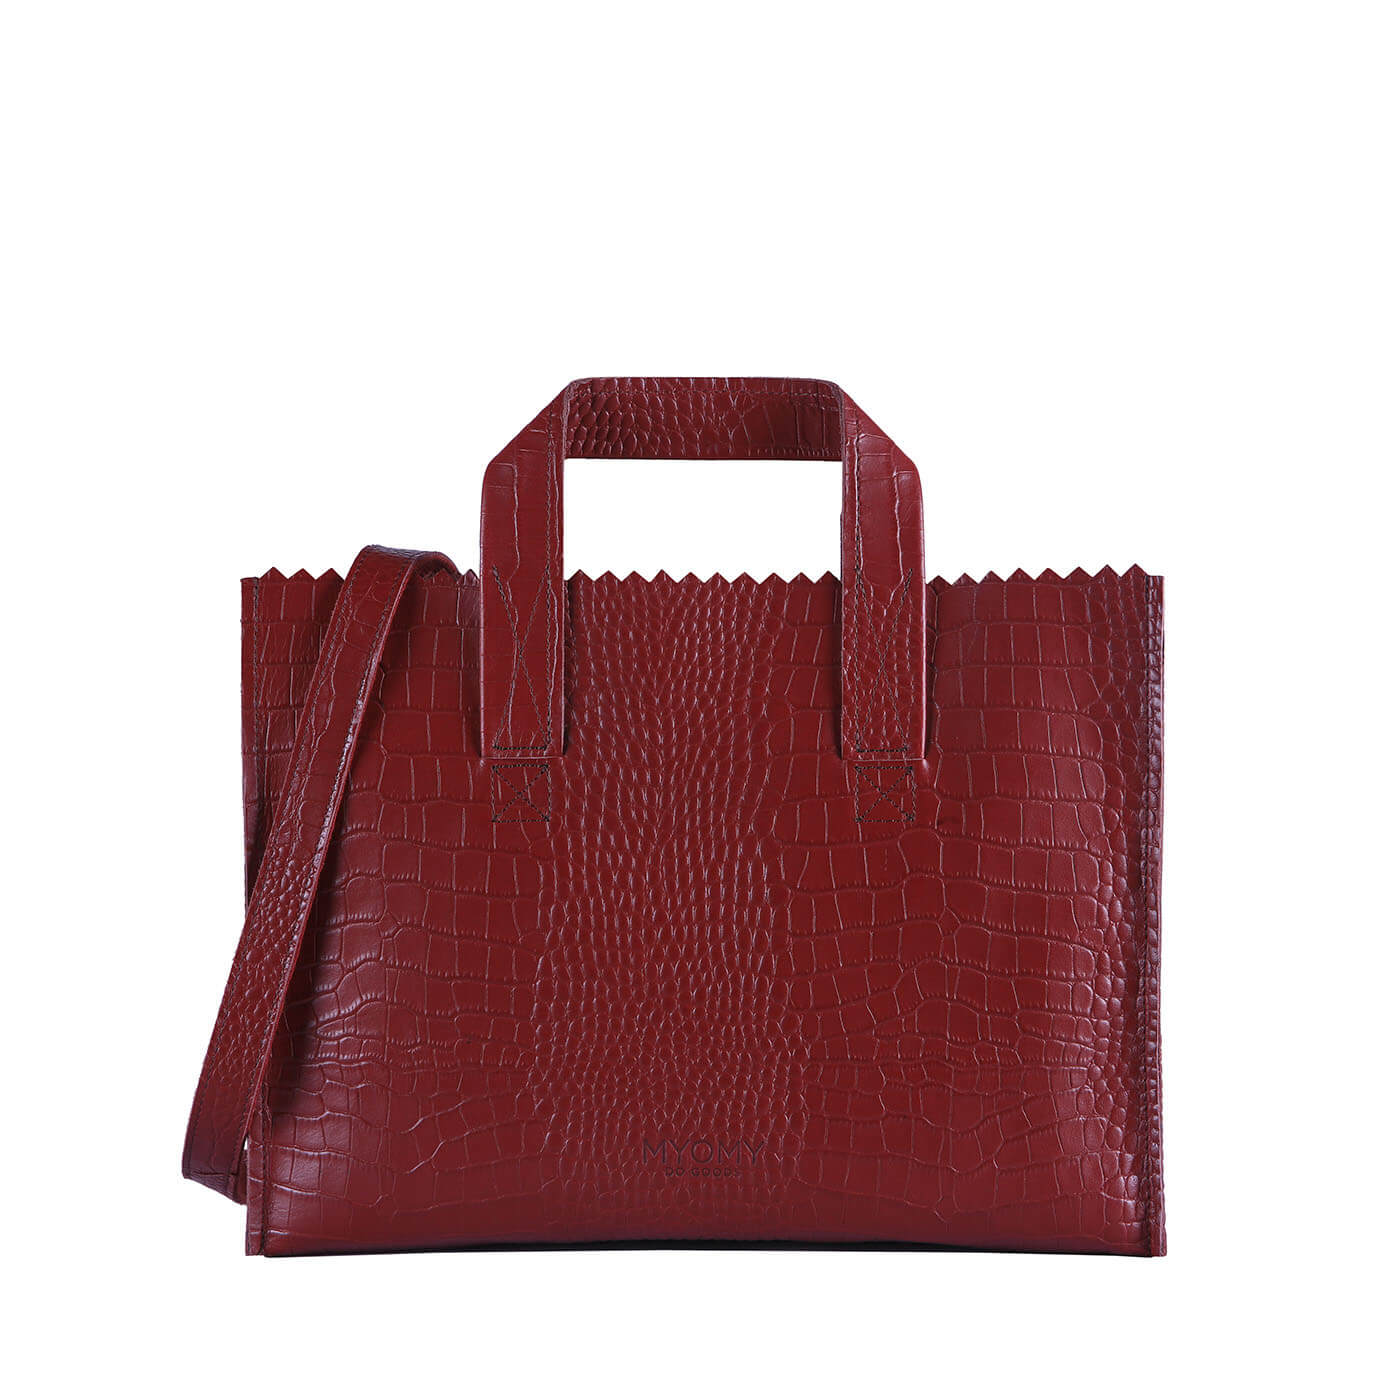 [PRE-ORDER] MY PAPER BAG Handbag cross-body – croco burgundy